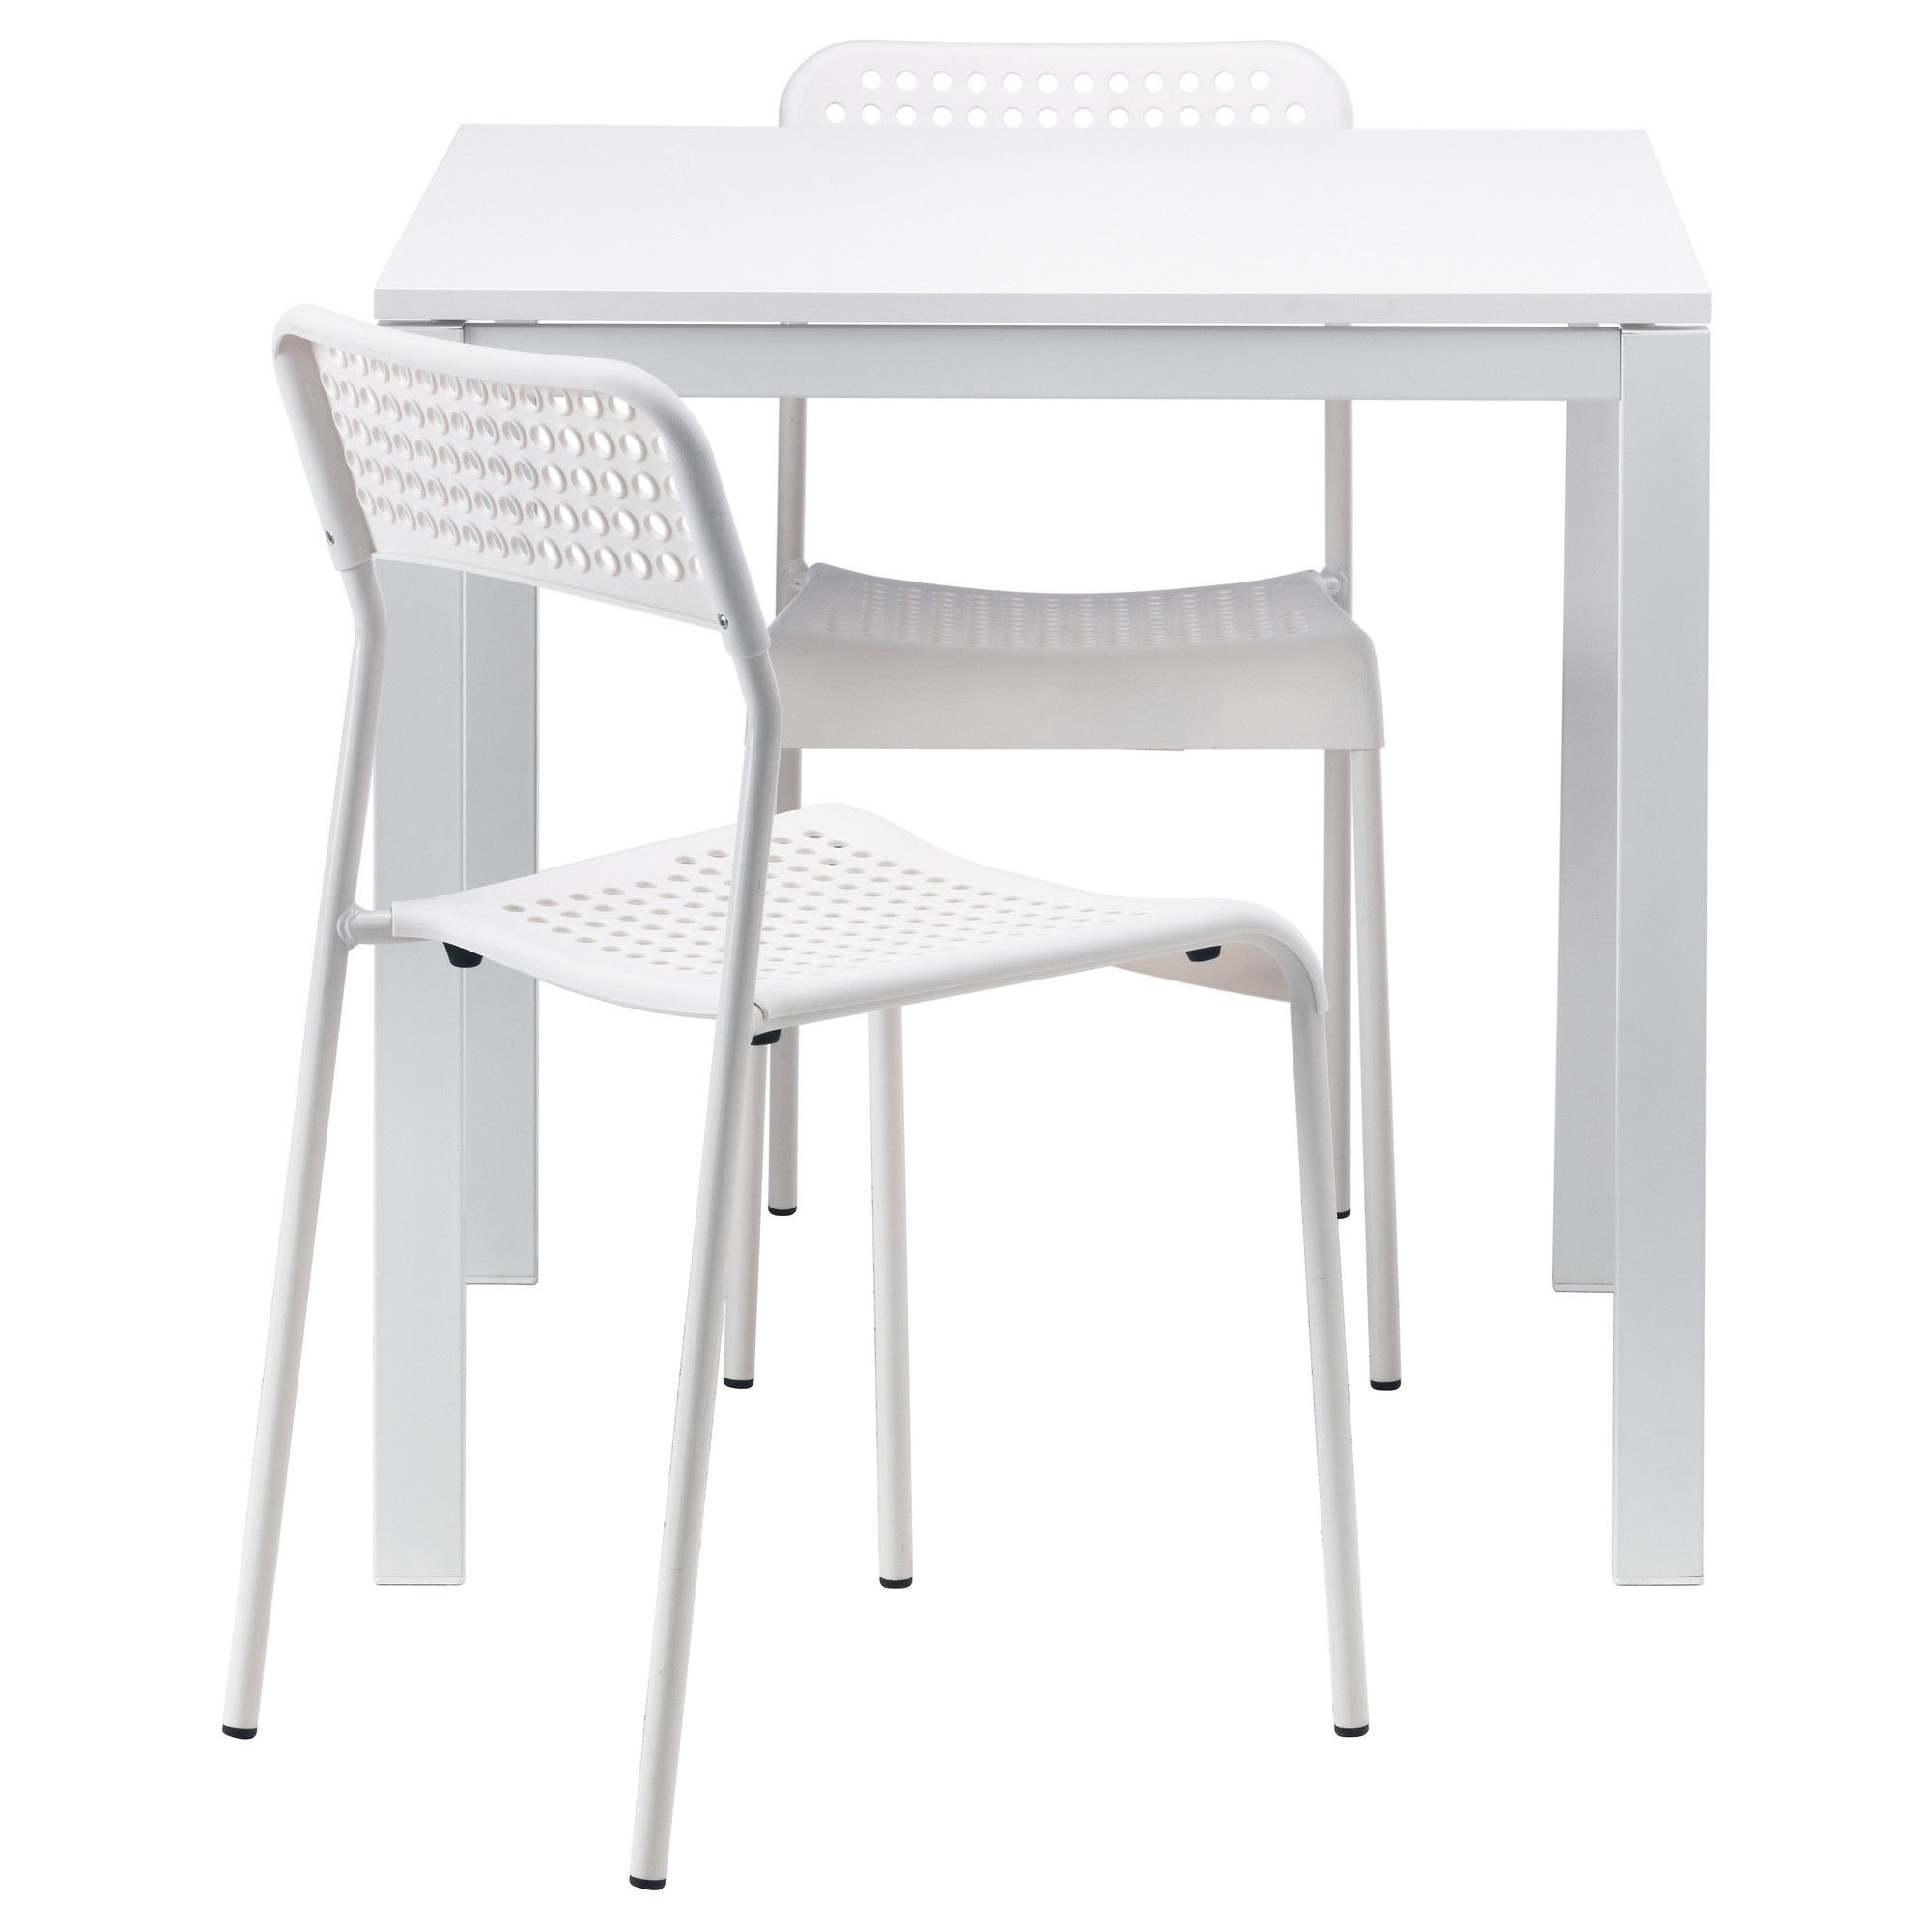 Dining Room Furniture Sets Ikea: IKEA MELLTORP / ADDE White Table And 2 Chairs